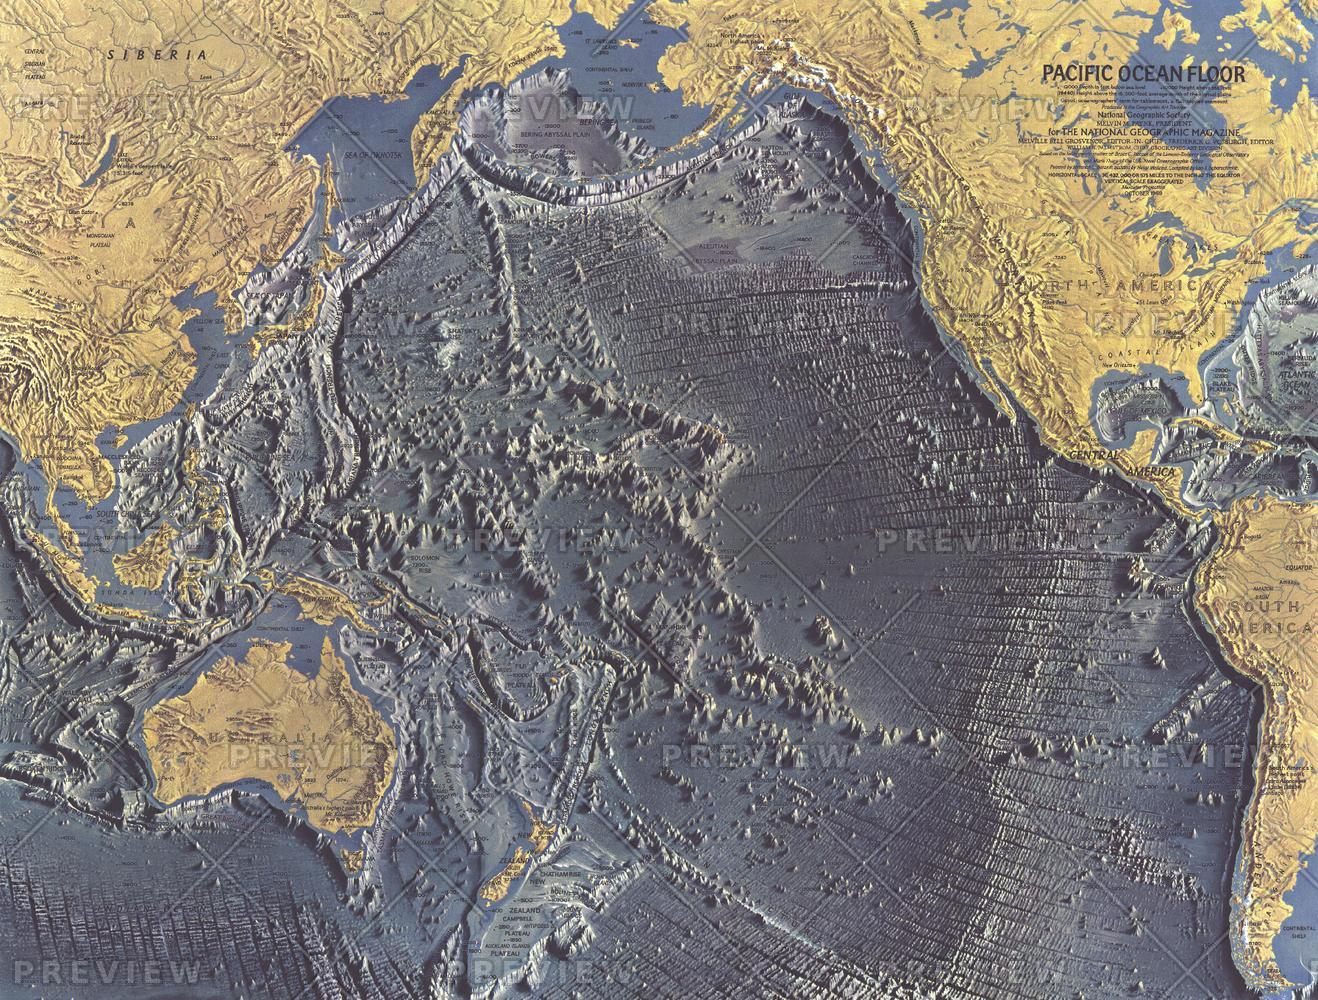 Pacific Ocean Floor  -  Published 1969